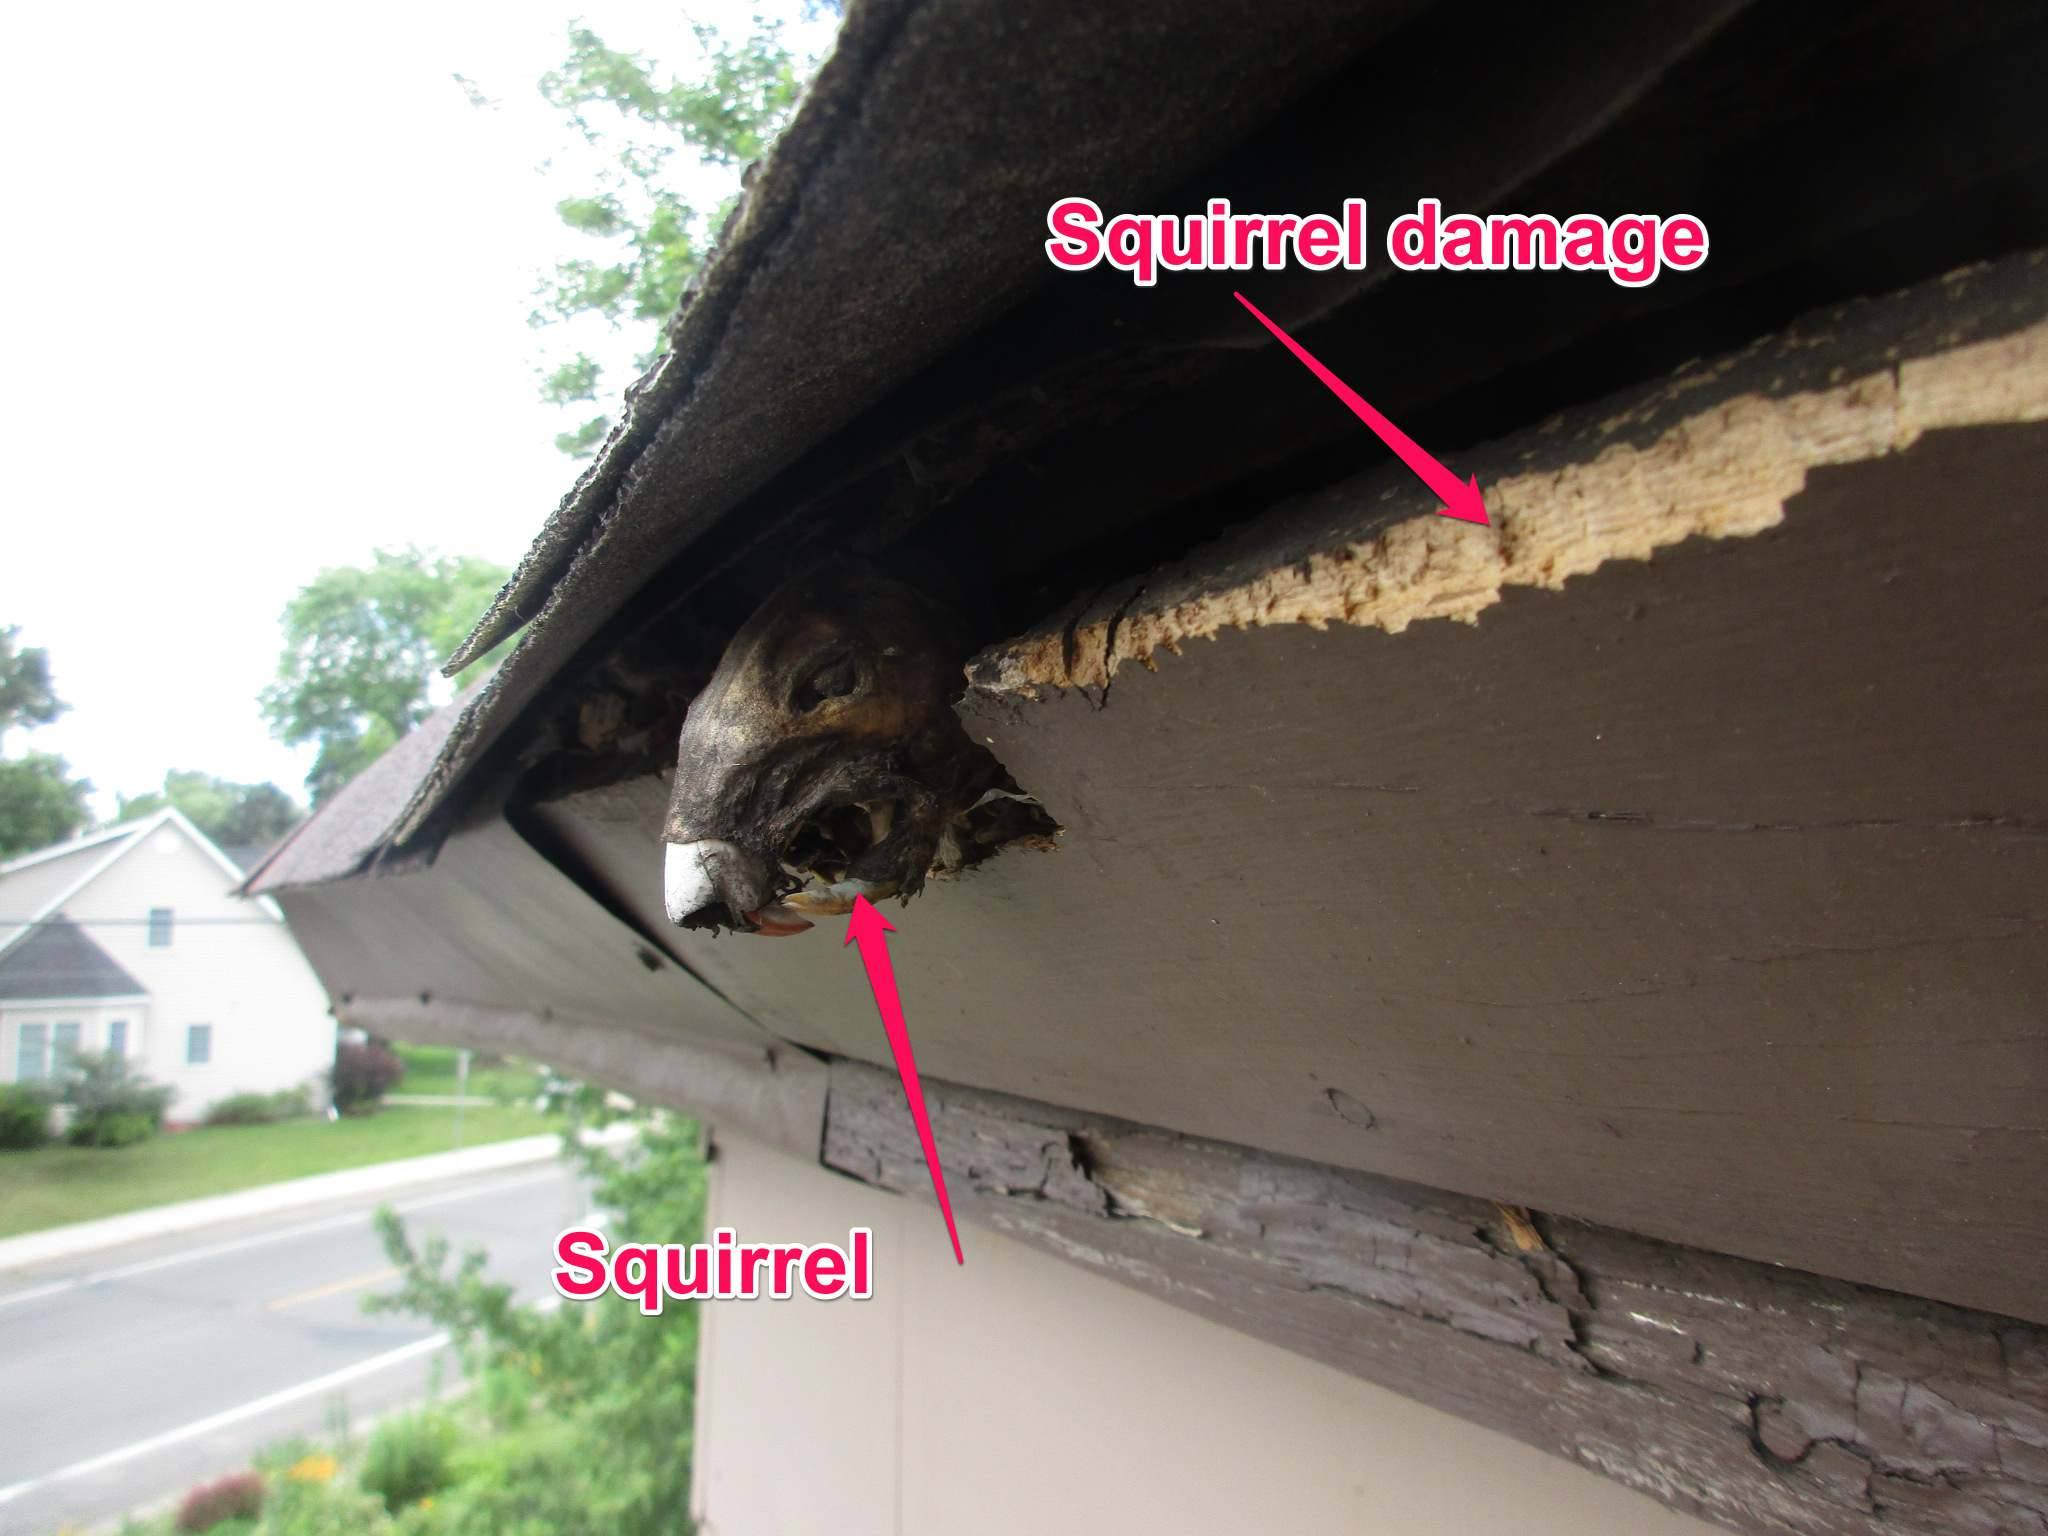 bad day for squirrel